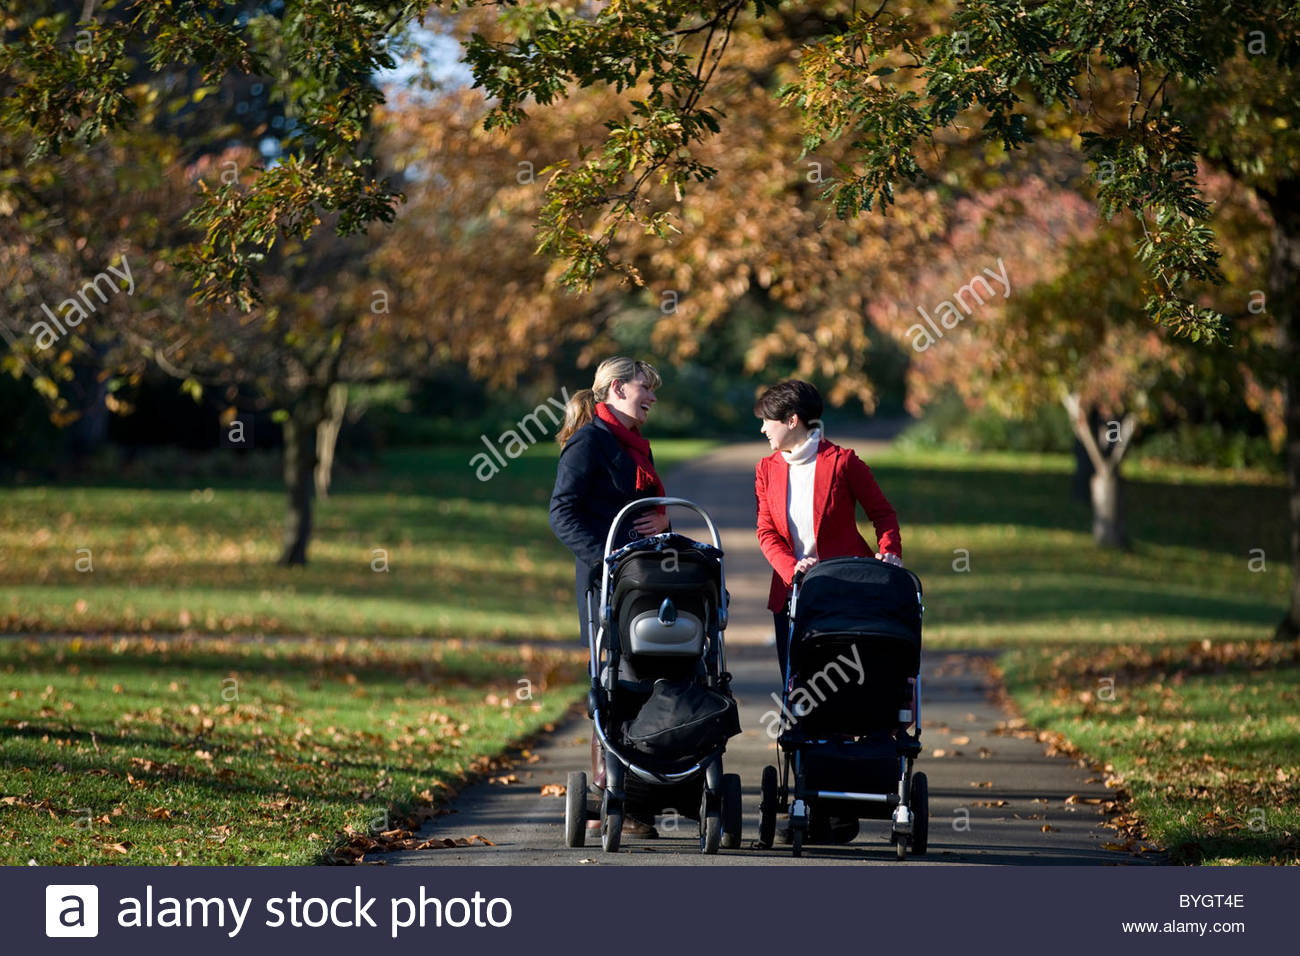 Two mothers pushing their strollers in the park, laughing Stock Photo